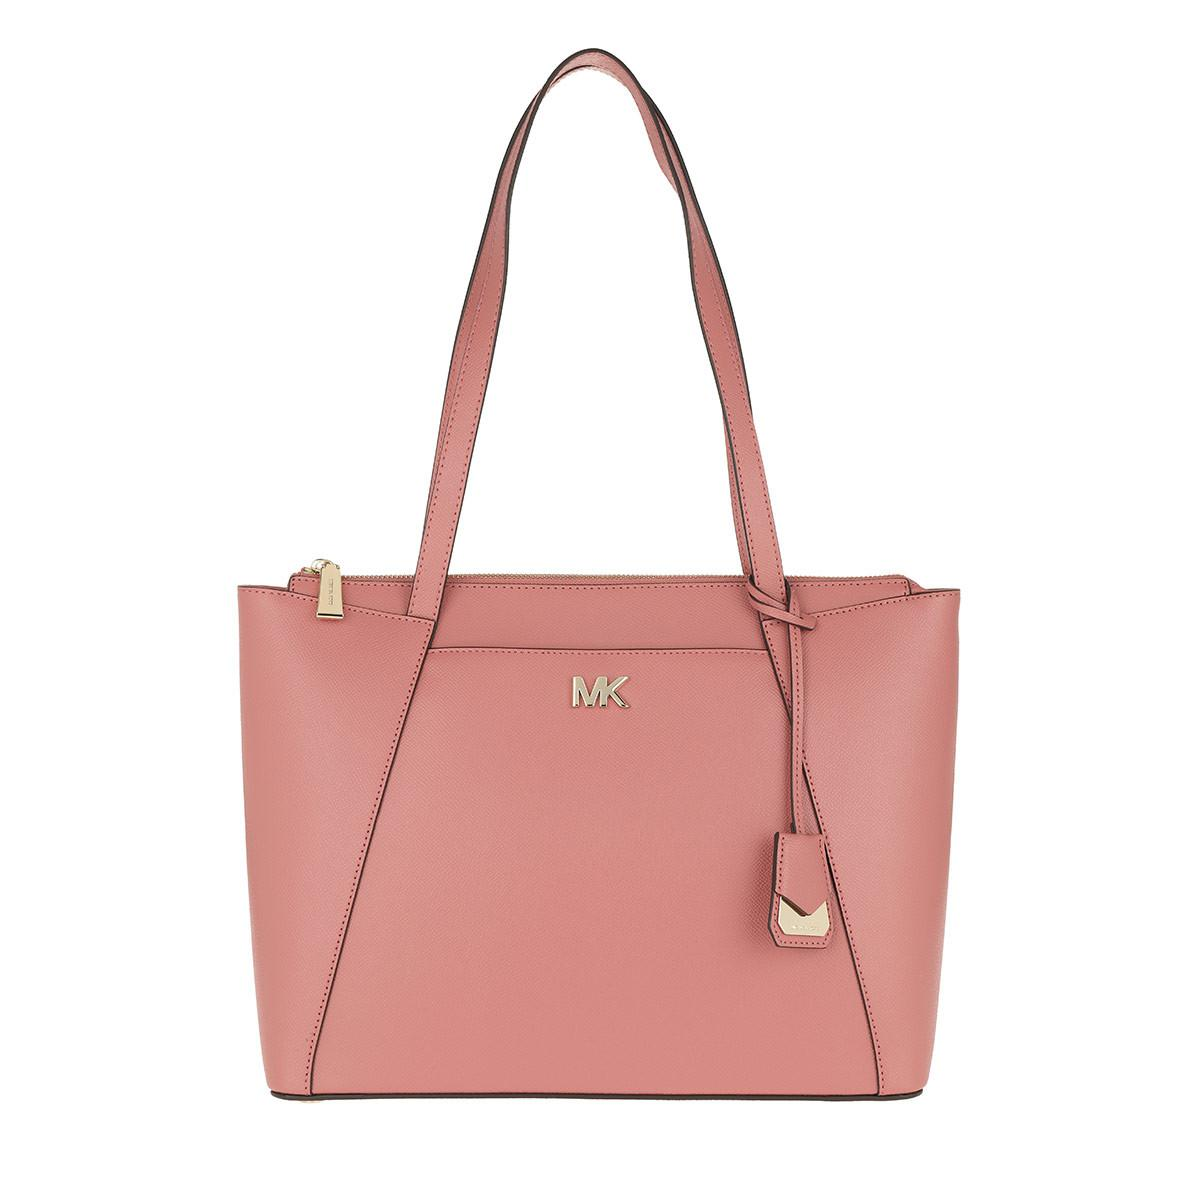 0e773f678c4eec Michael Kors Maddie Md Ew Tz Tote Rose in Pink - Lyst